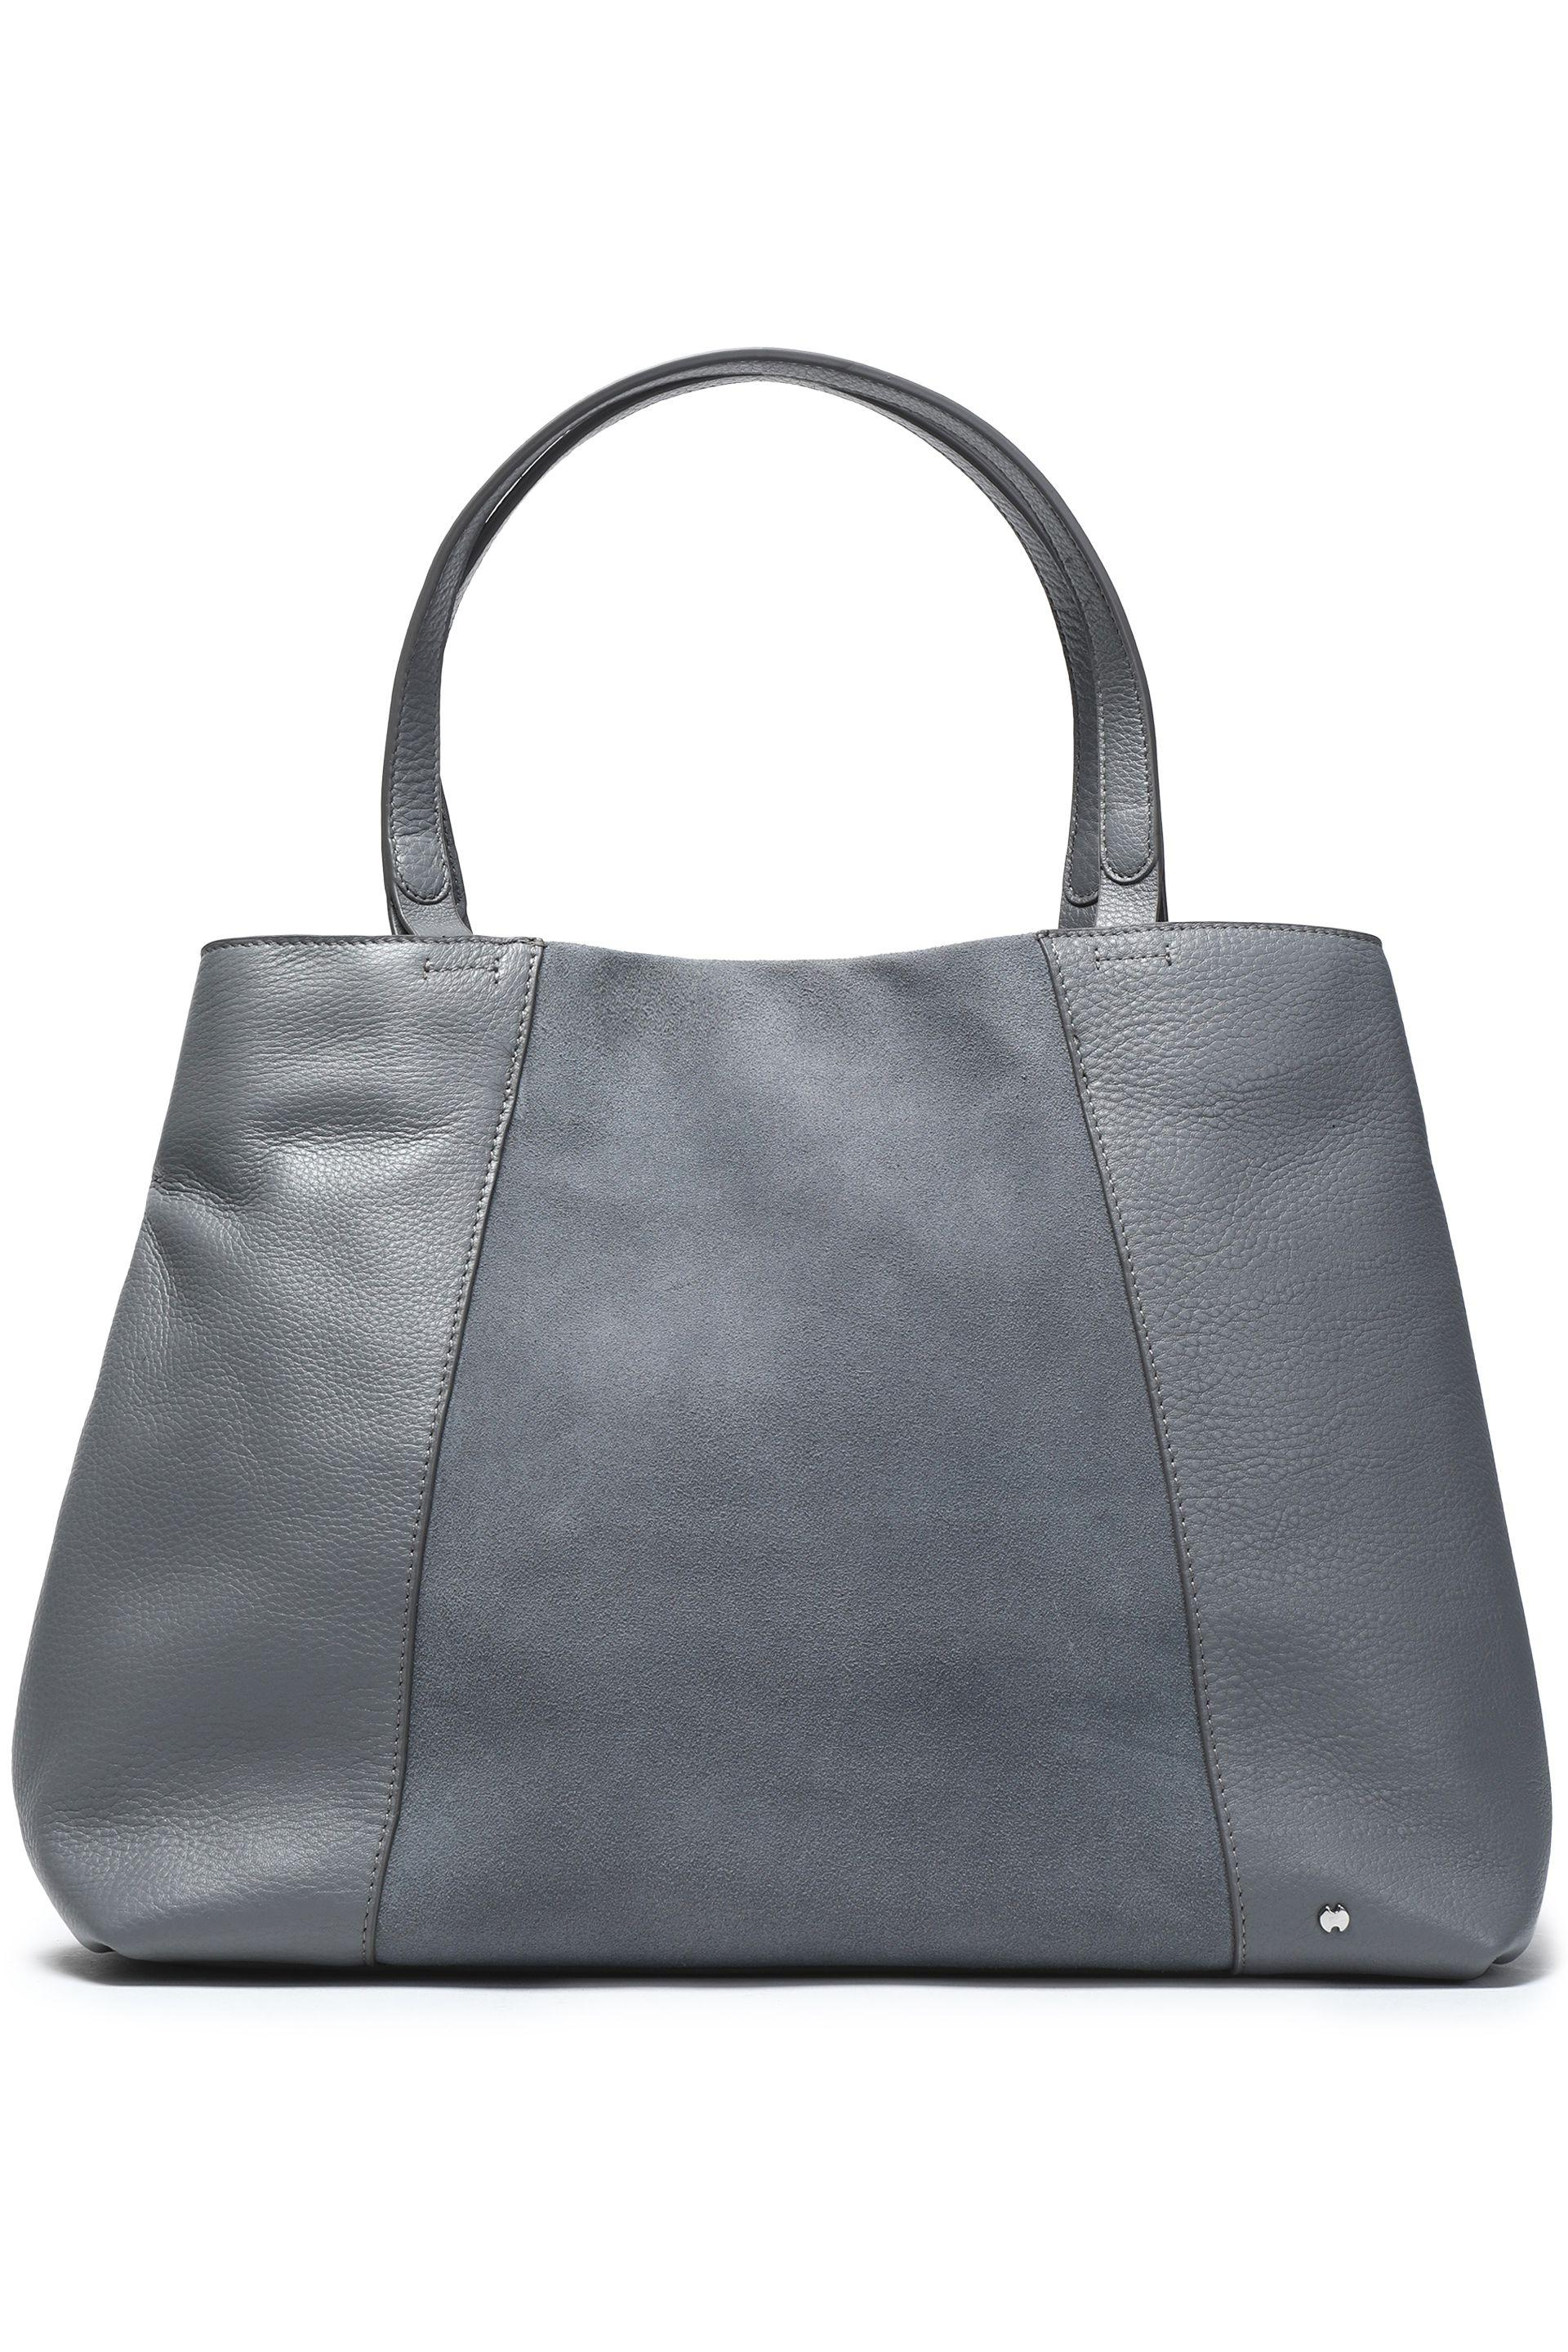 bbf62651e2 Halston Woman Suede-paneled Textured-leather Tote Gray in Gray - Lyst